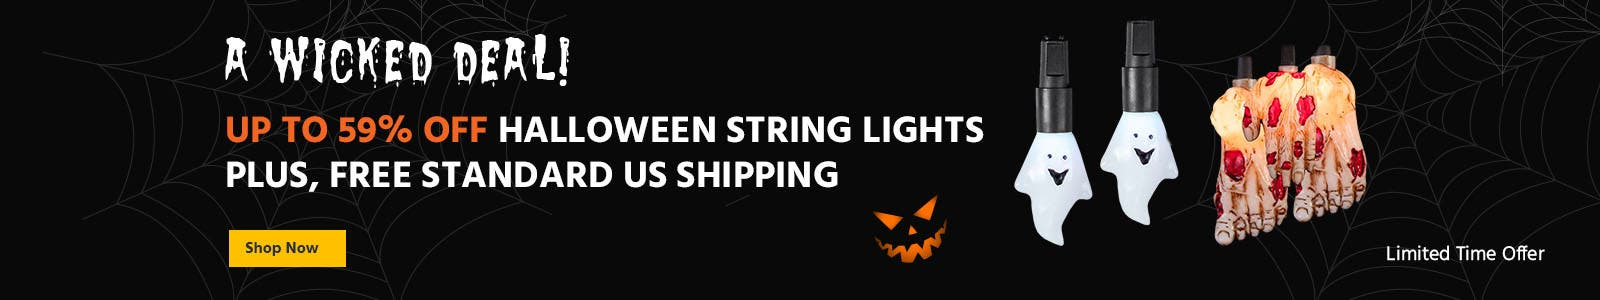 A Wicked Deal, Up to 69% off Halloween string lights plus, free standard us shipping. shop now